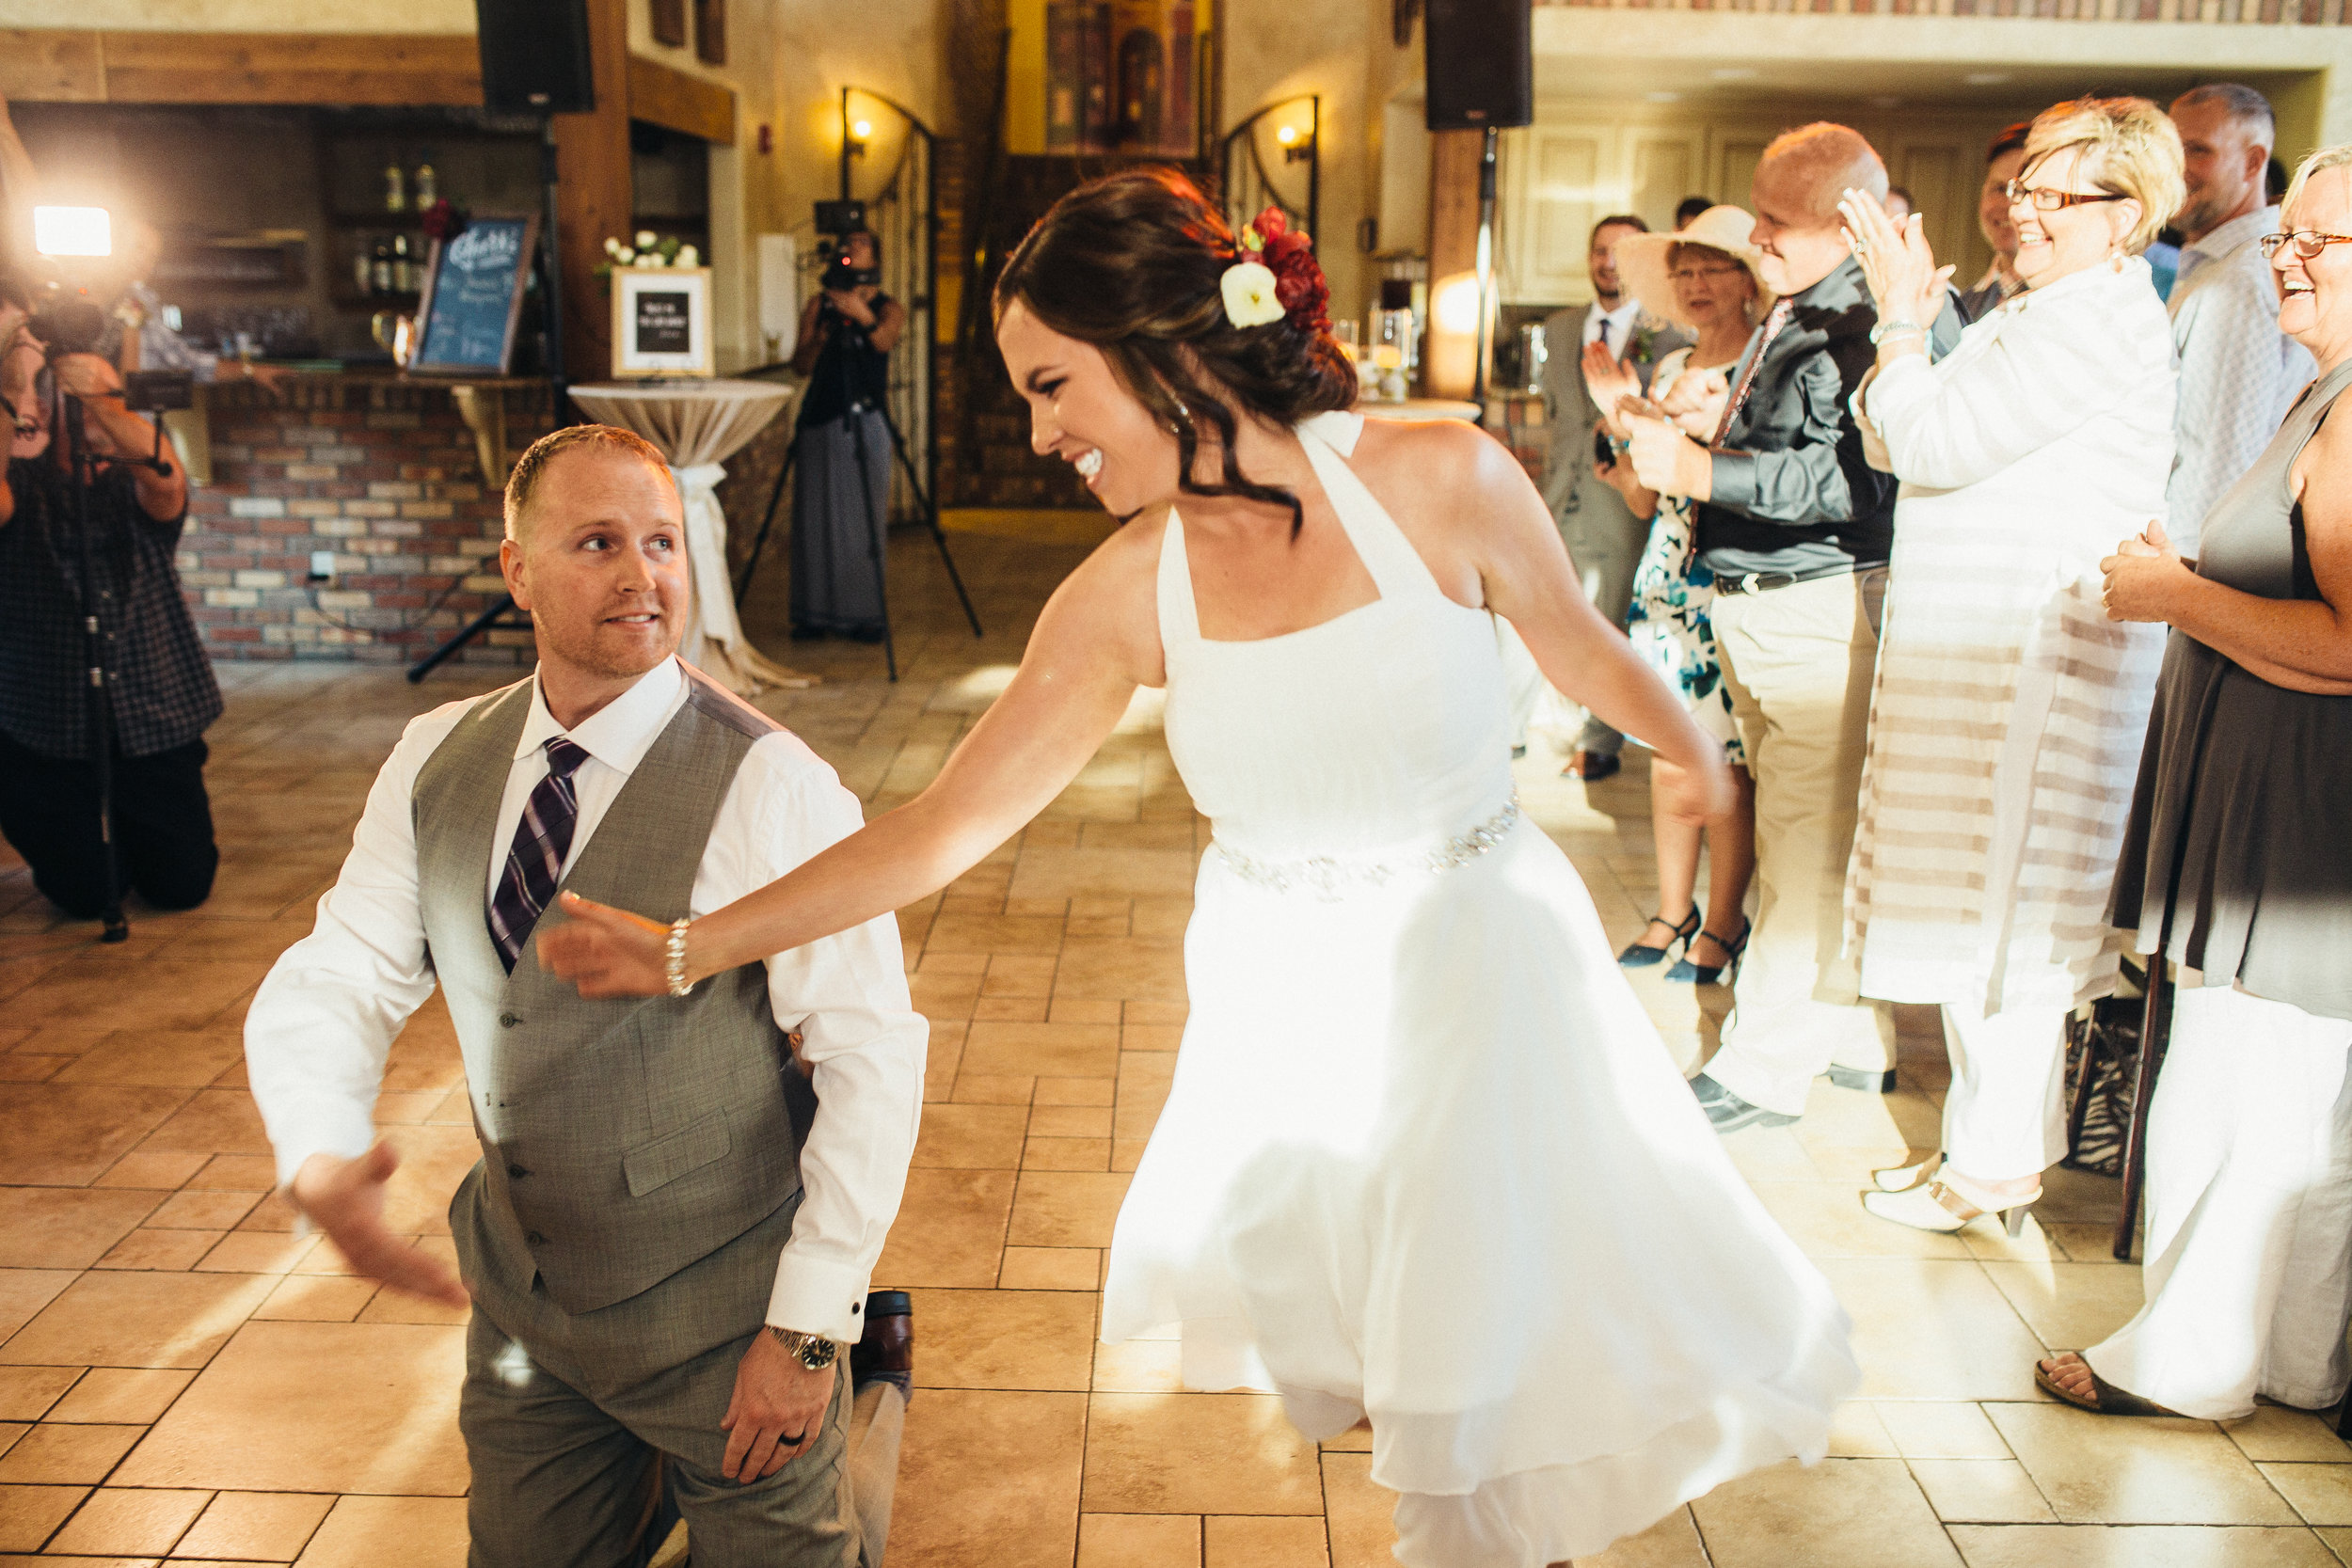 Spice up your first dance with Wedding Dance Coach... our sister studio!